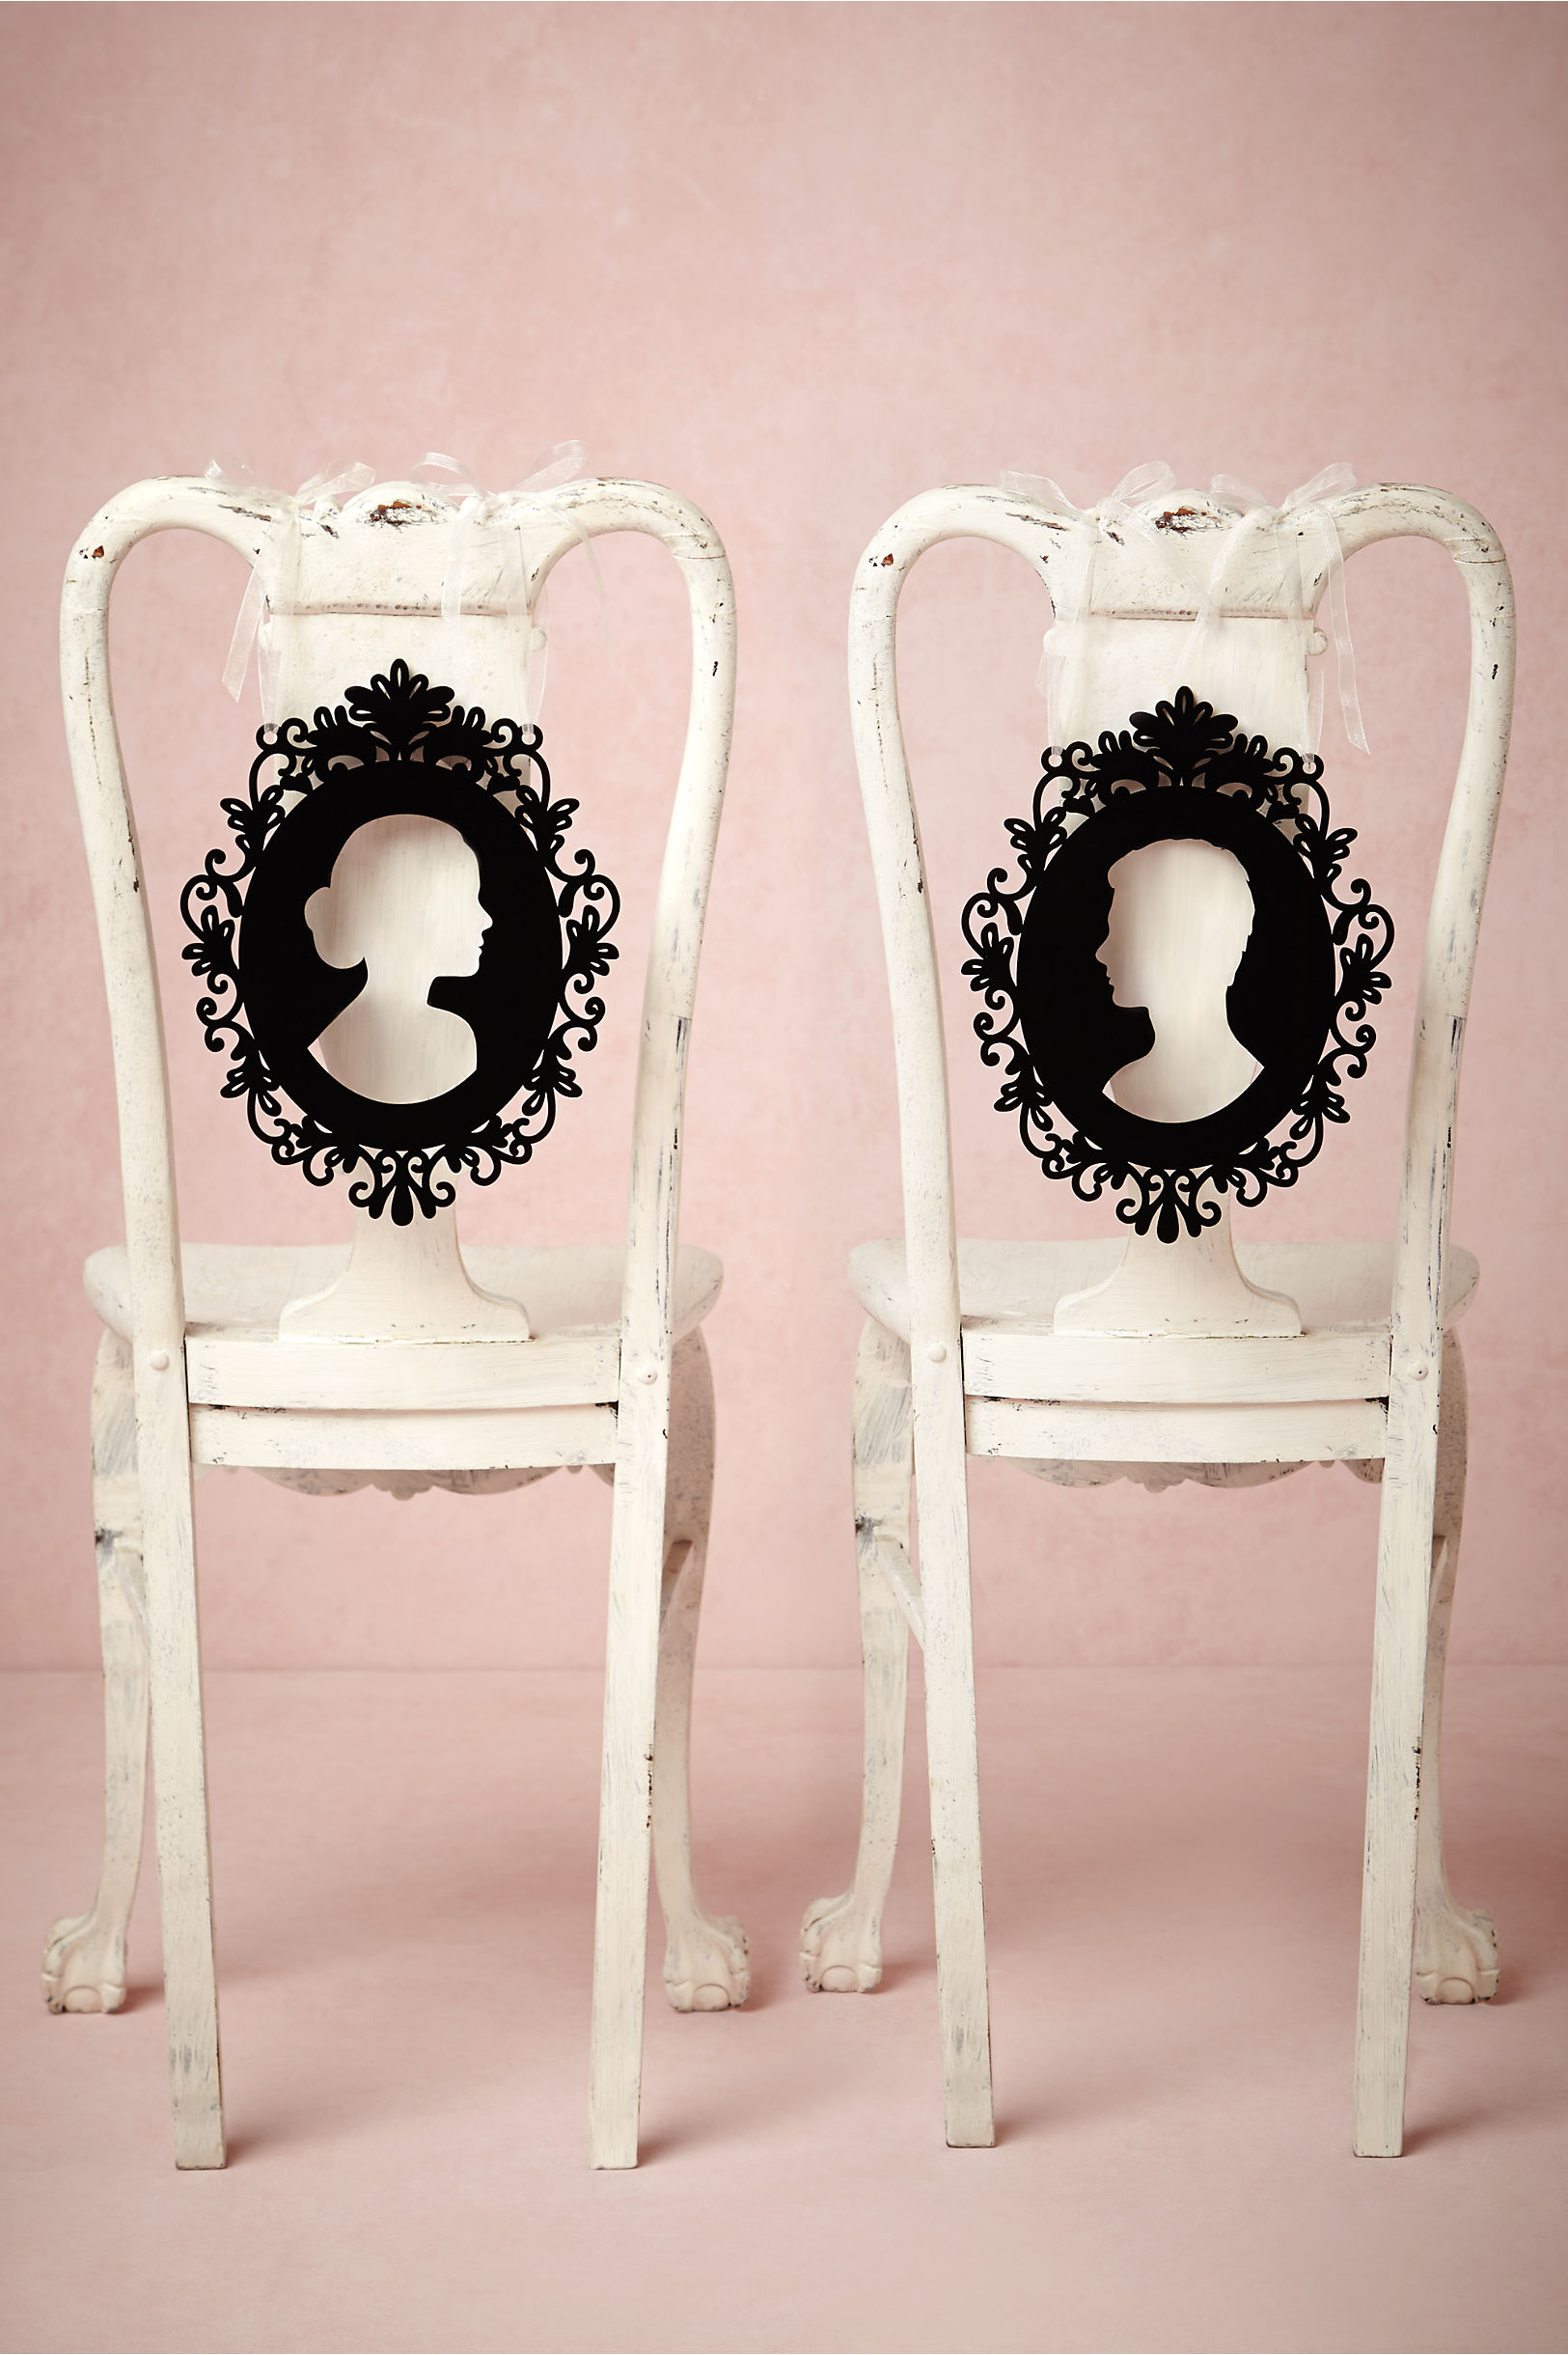 Silhouette Chair Signs in Décor & Gifts | BHLDN